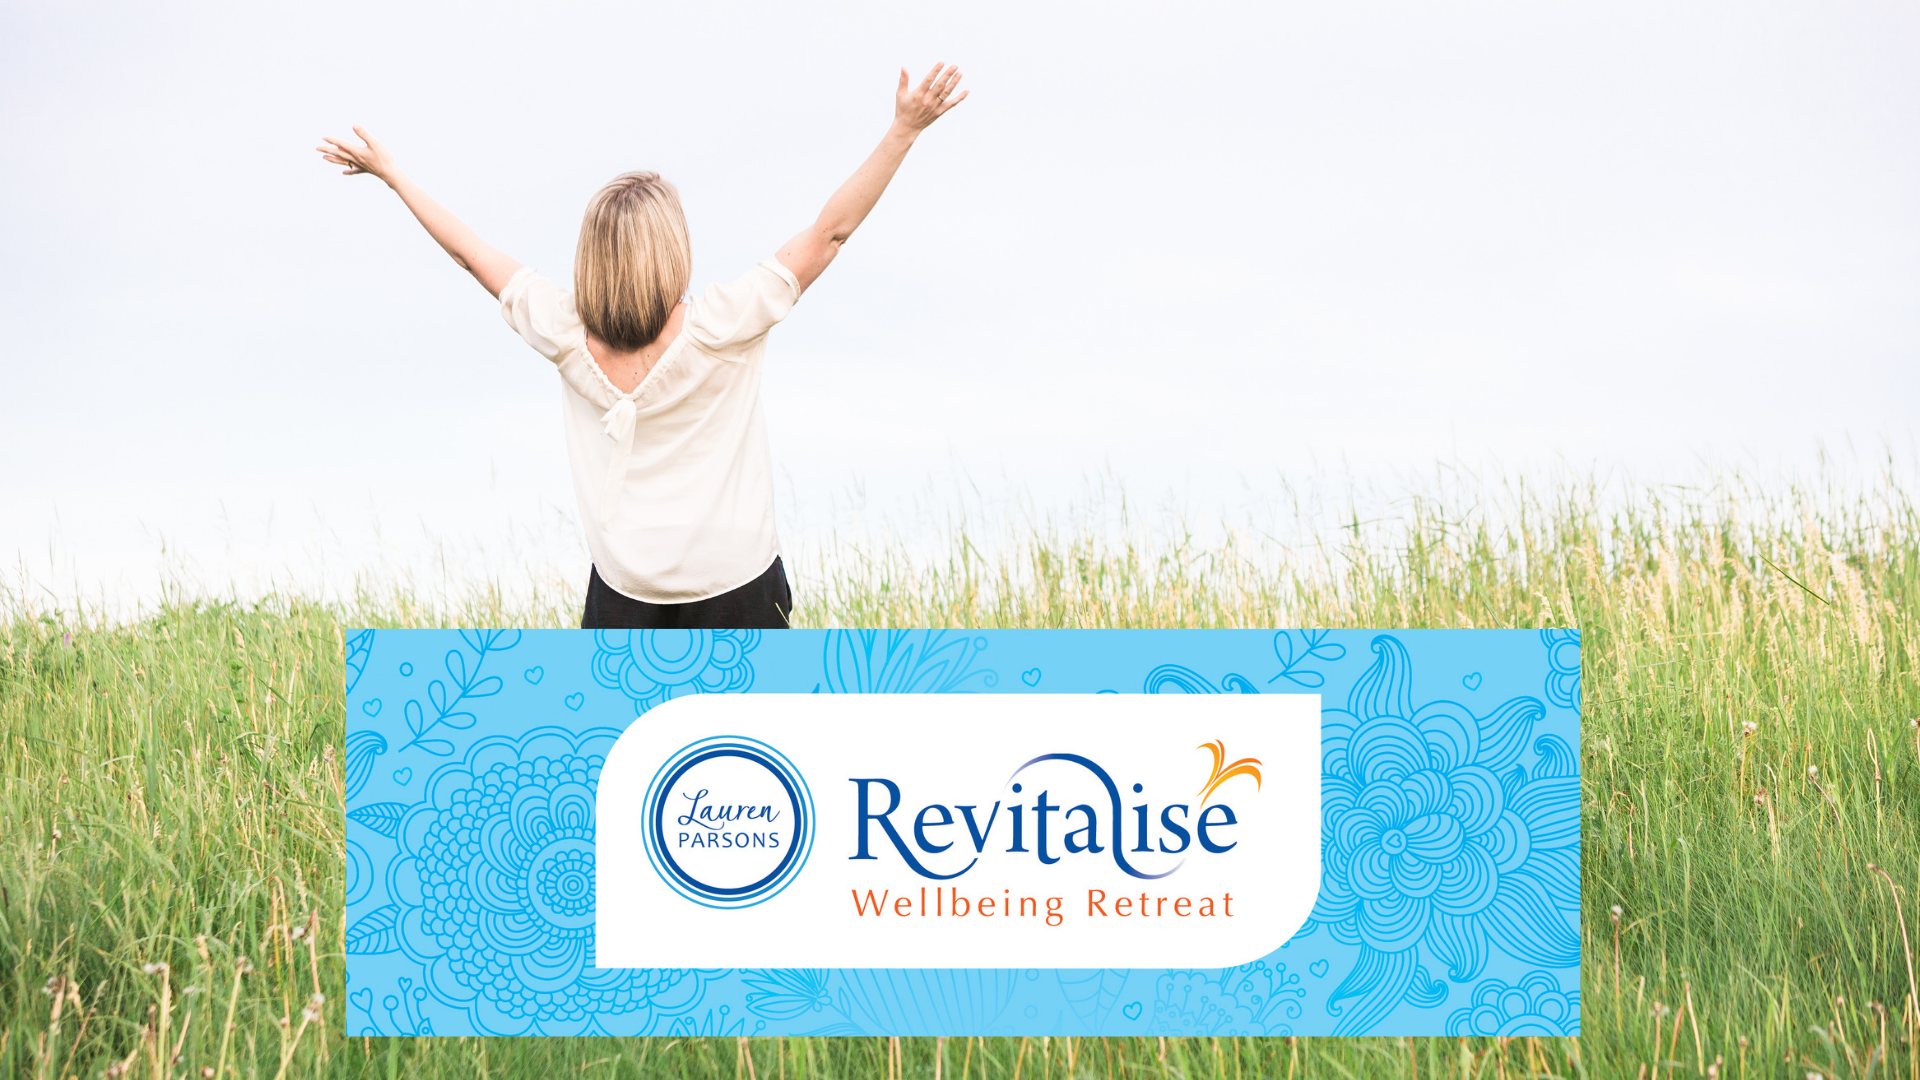 Lauren Parsons Workplace Wellbeing Training - Revitalise Wellness Retreat